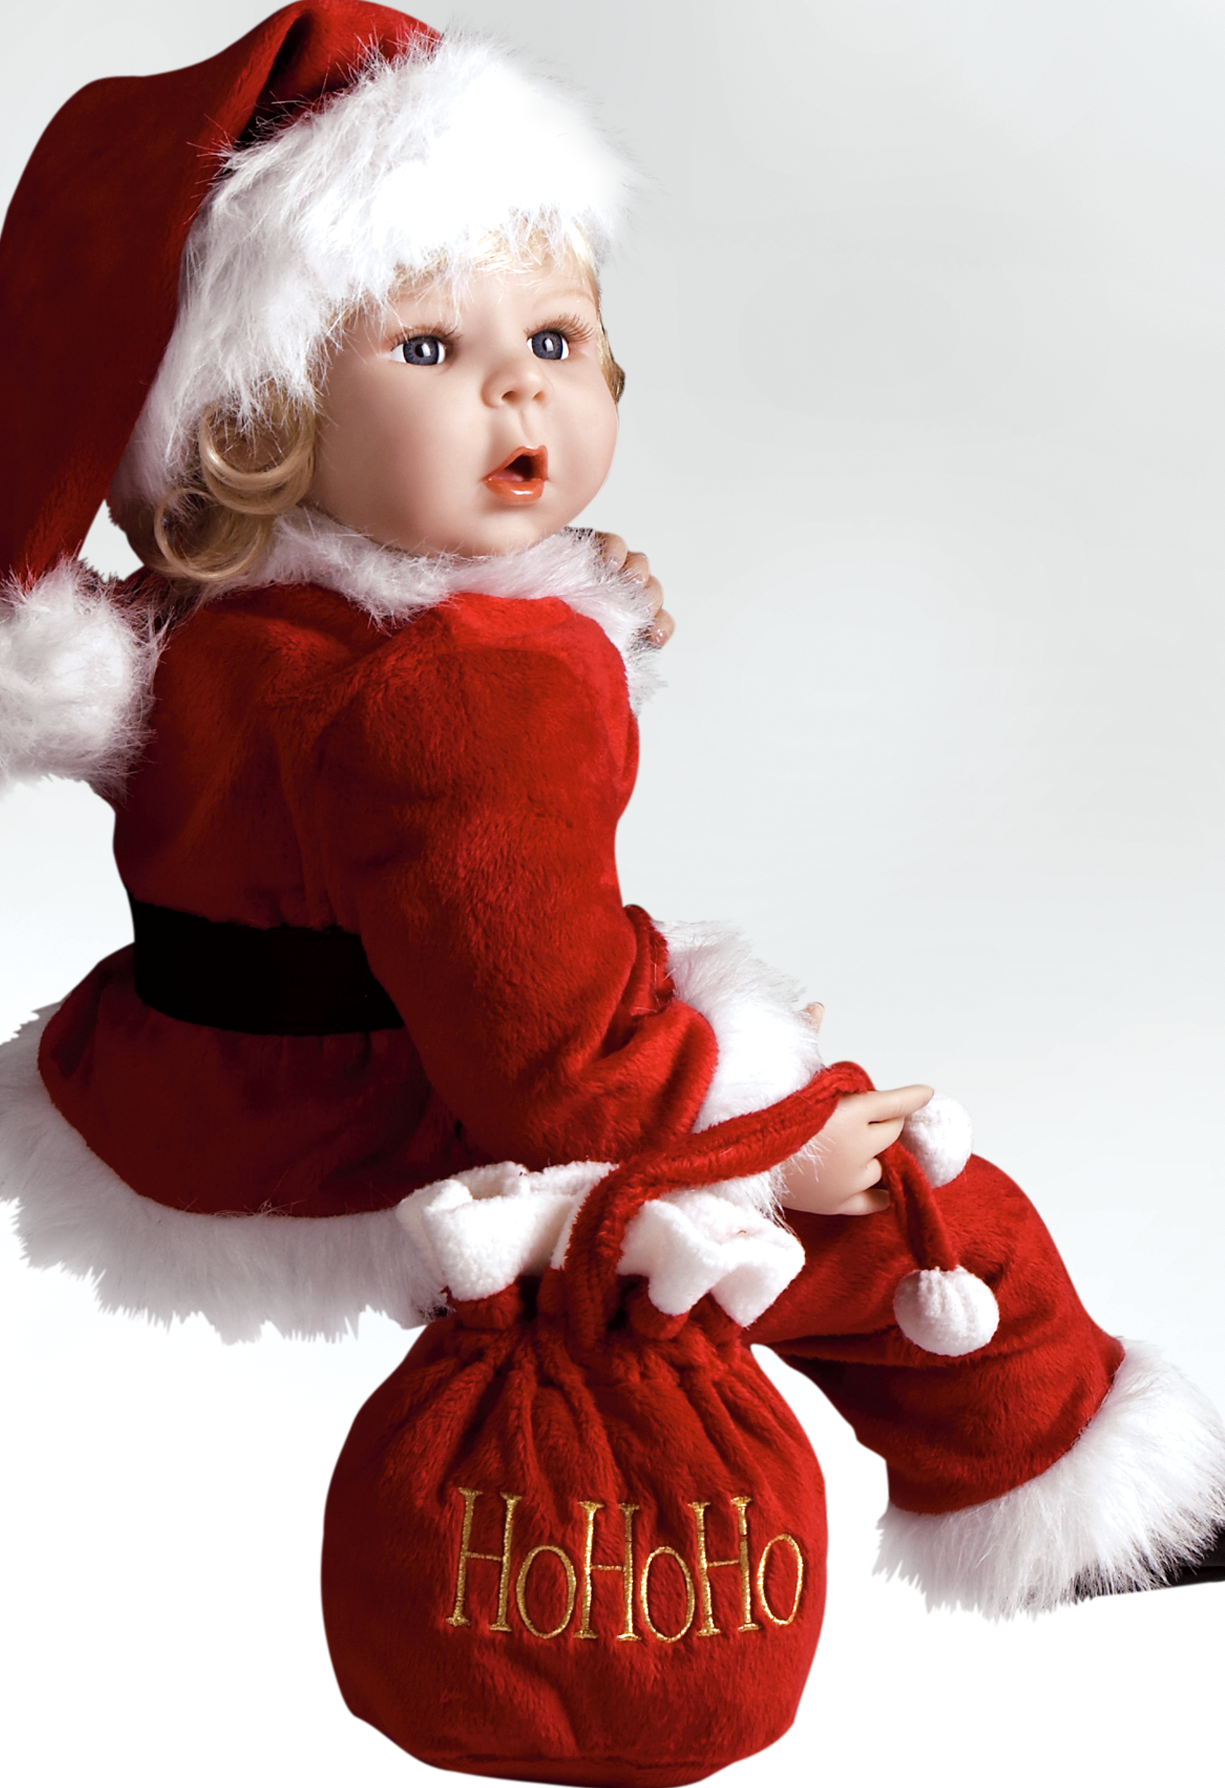 ho-ho-ho-realistic-baby-doll_c.png (PNG Image, 1225 × 1788 pixels) - Scaled (39%)